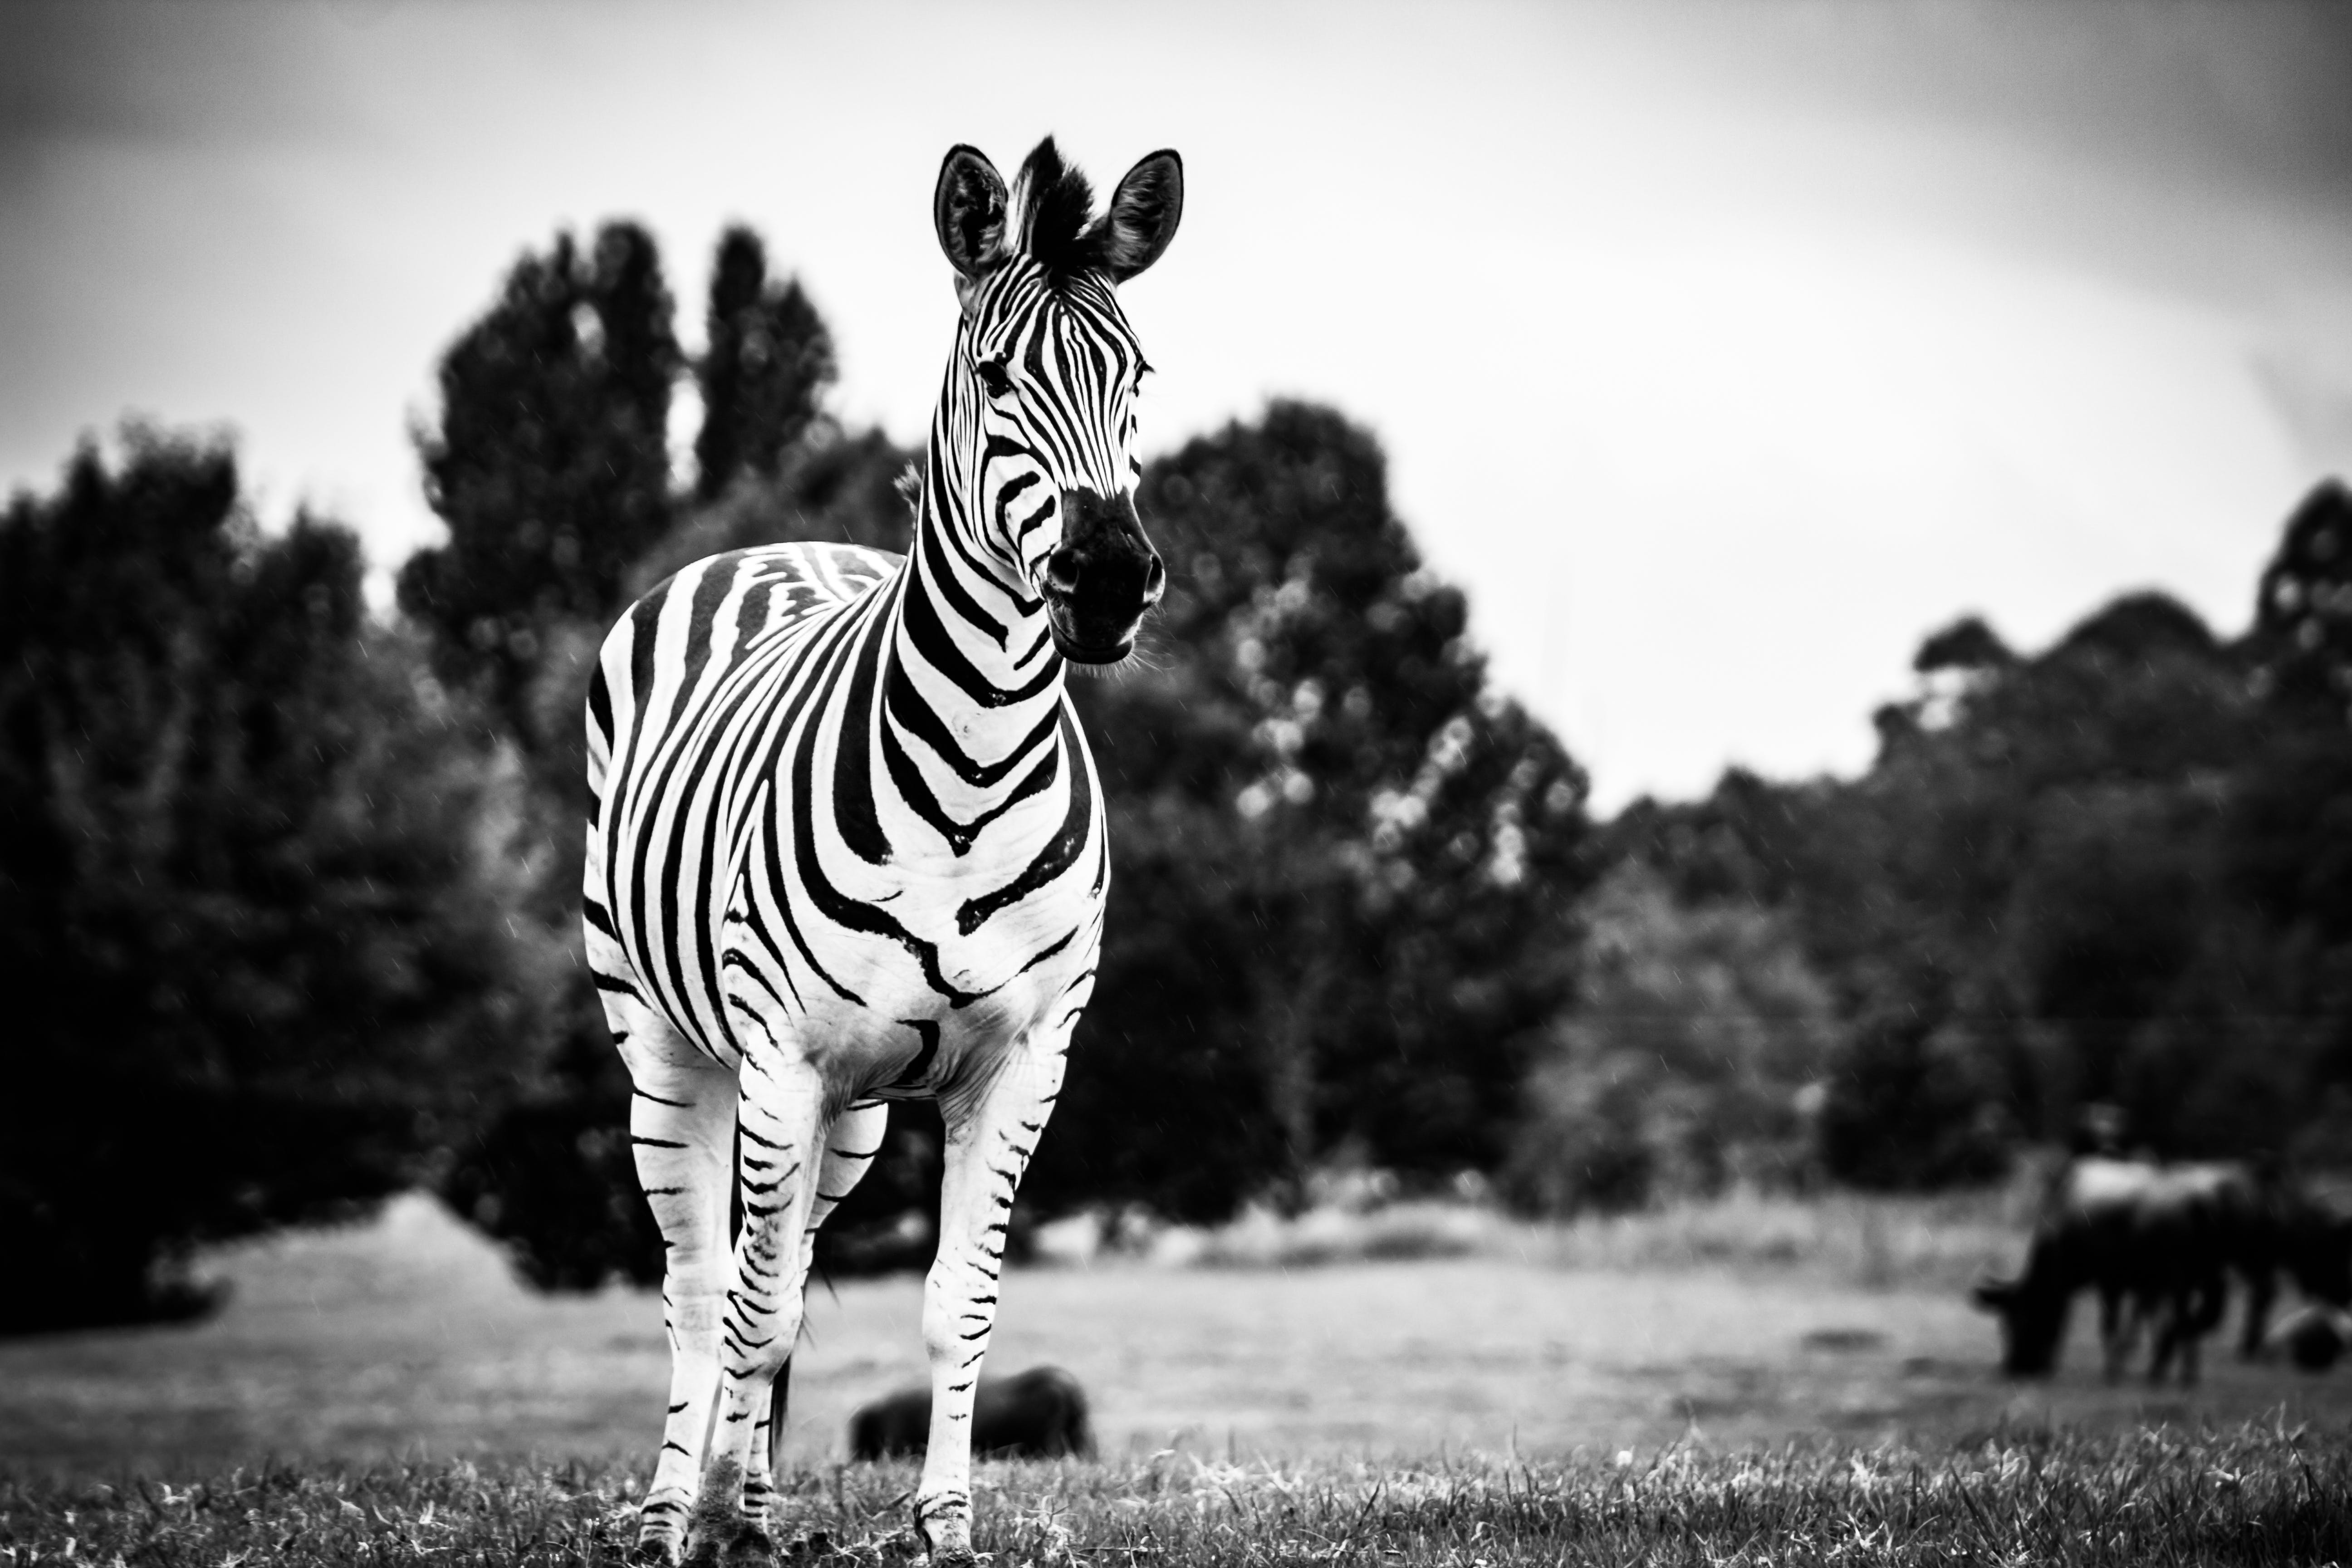 Zebra in Grayscale Photography